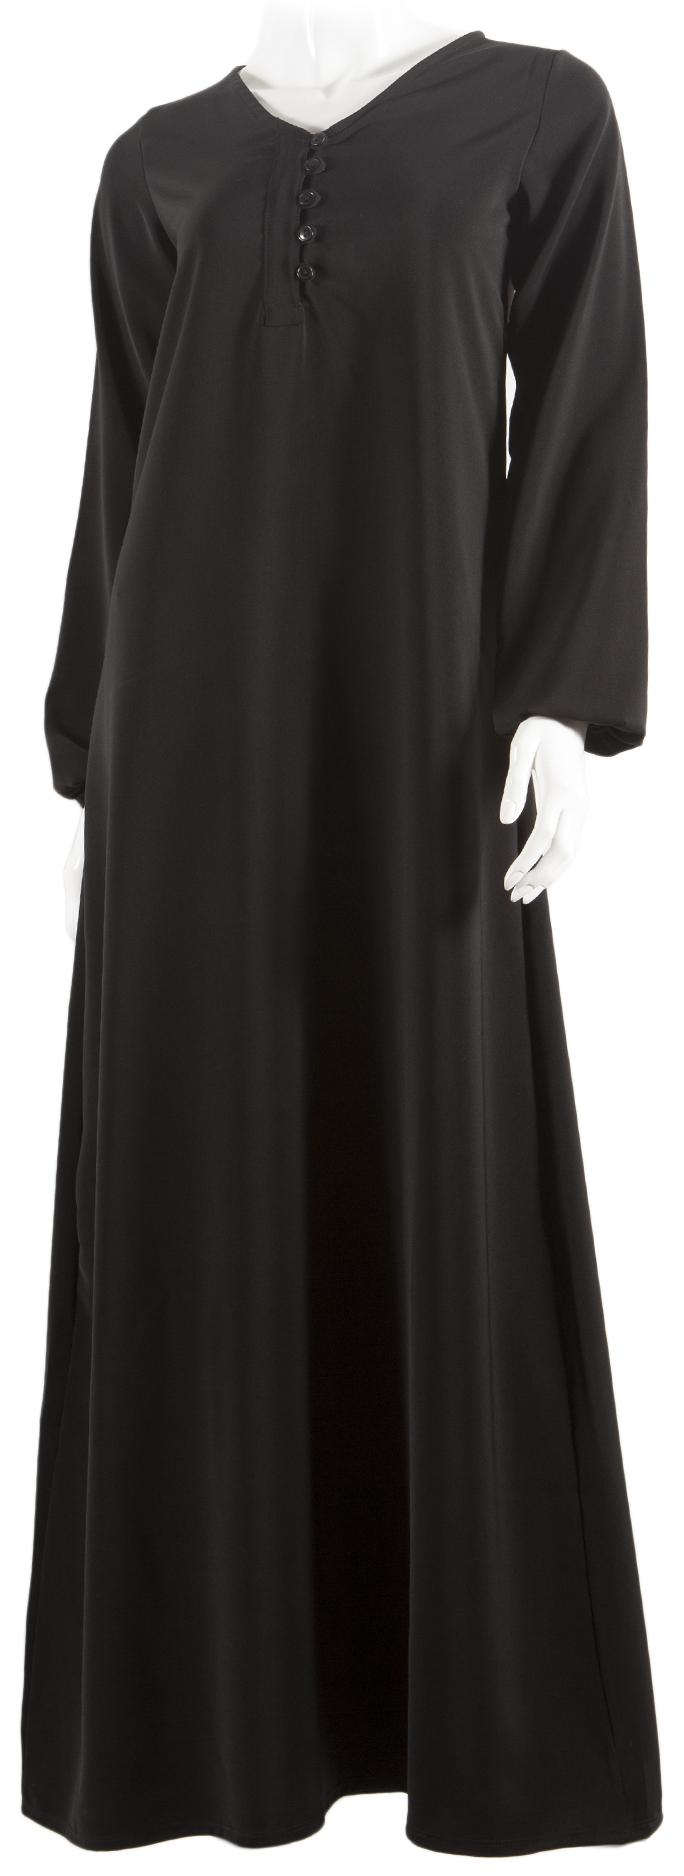 Abaya allaitement